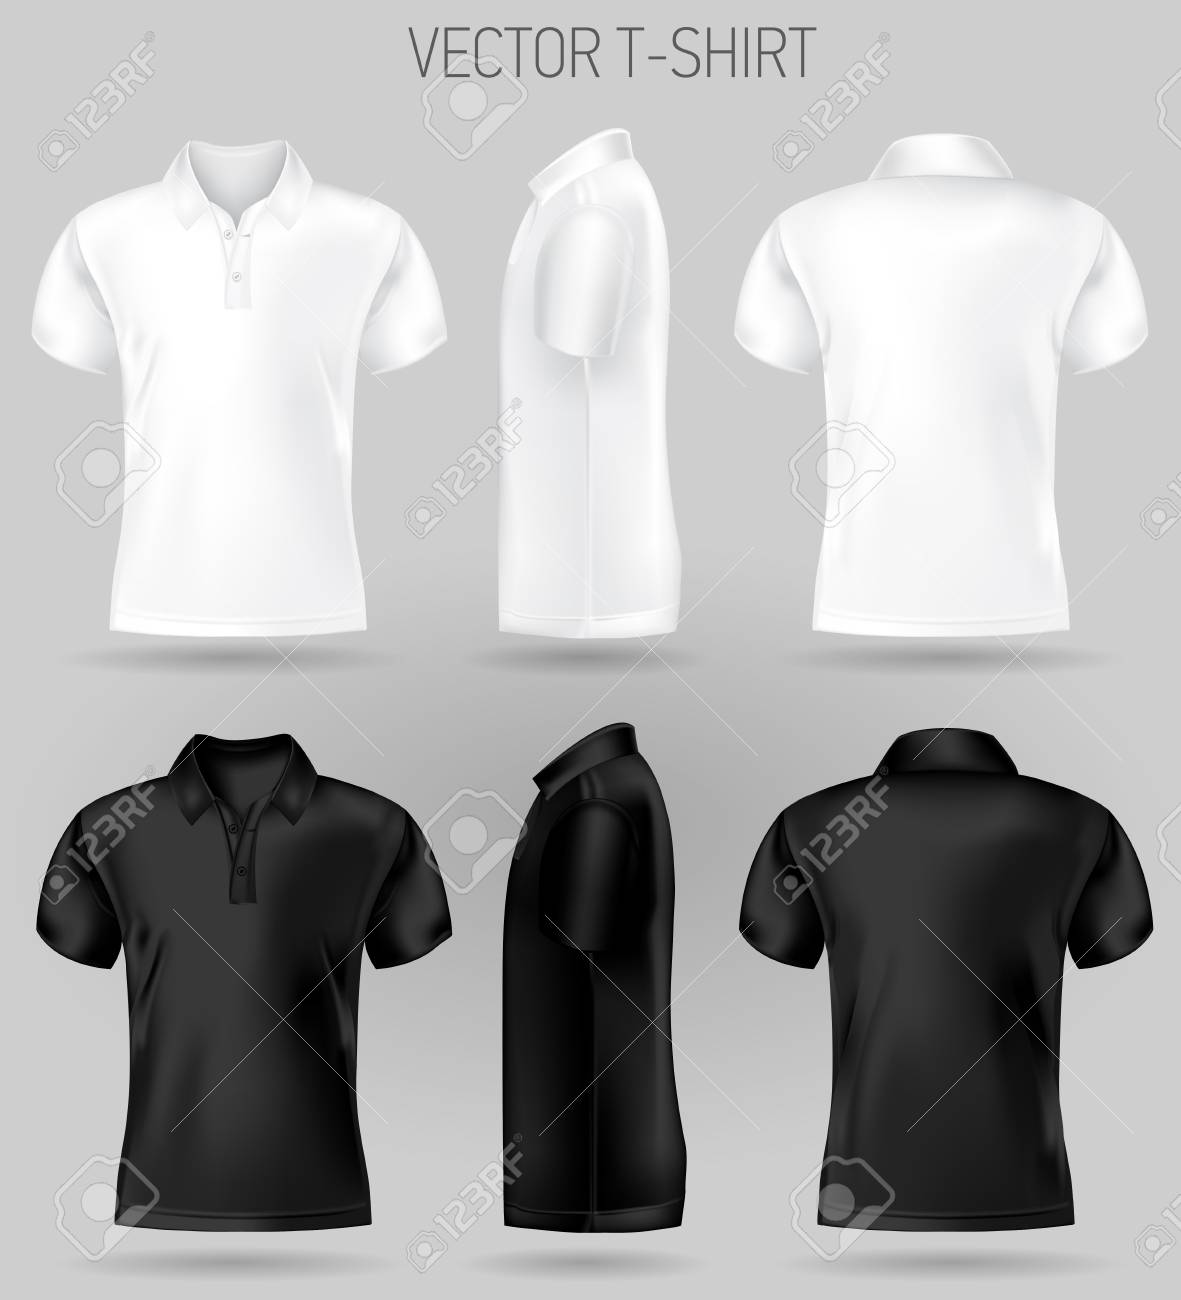 black and white short sleeve polo shirt design templates front, back, and side views . vector t-shirt mock up - 123120074